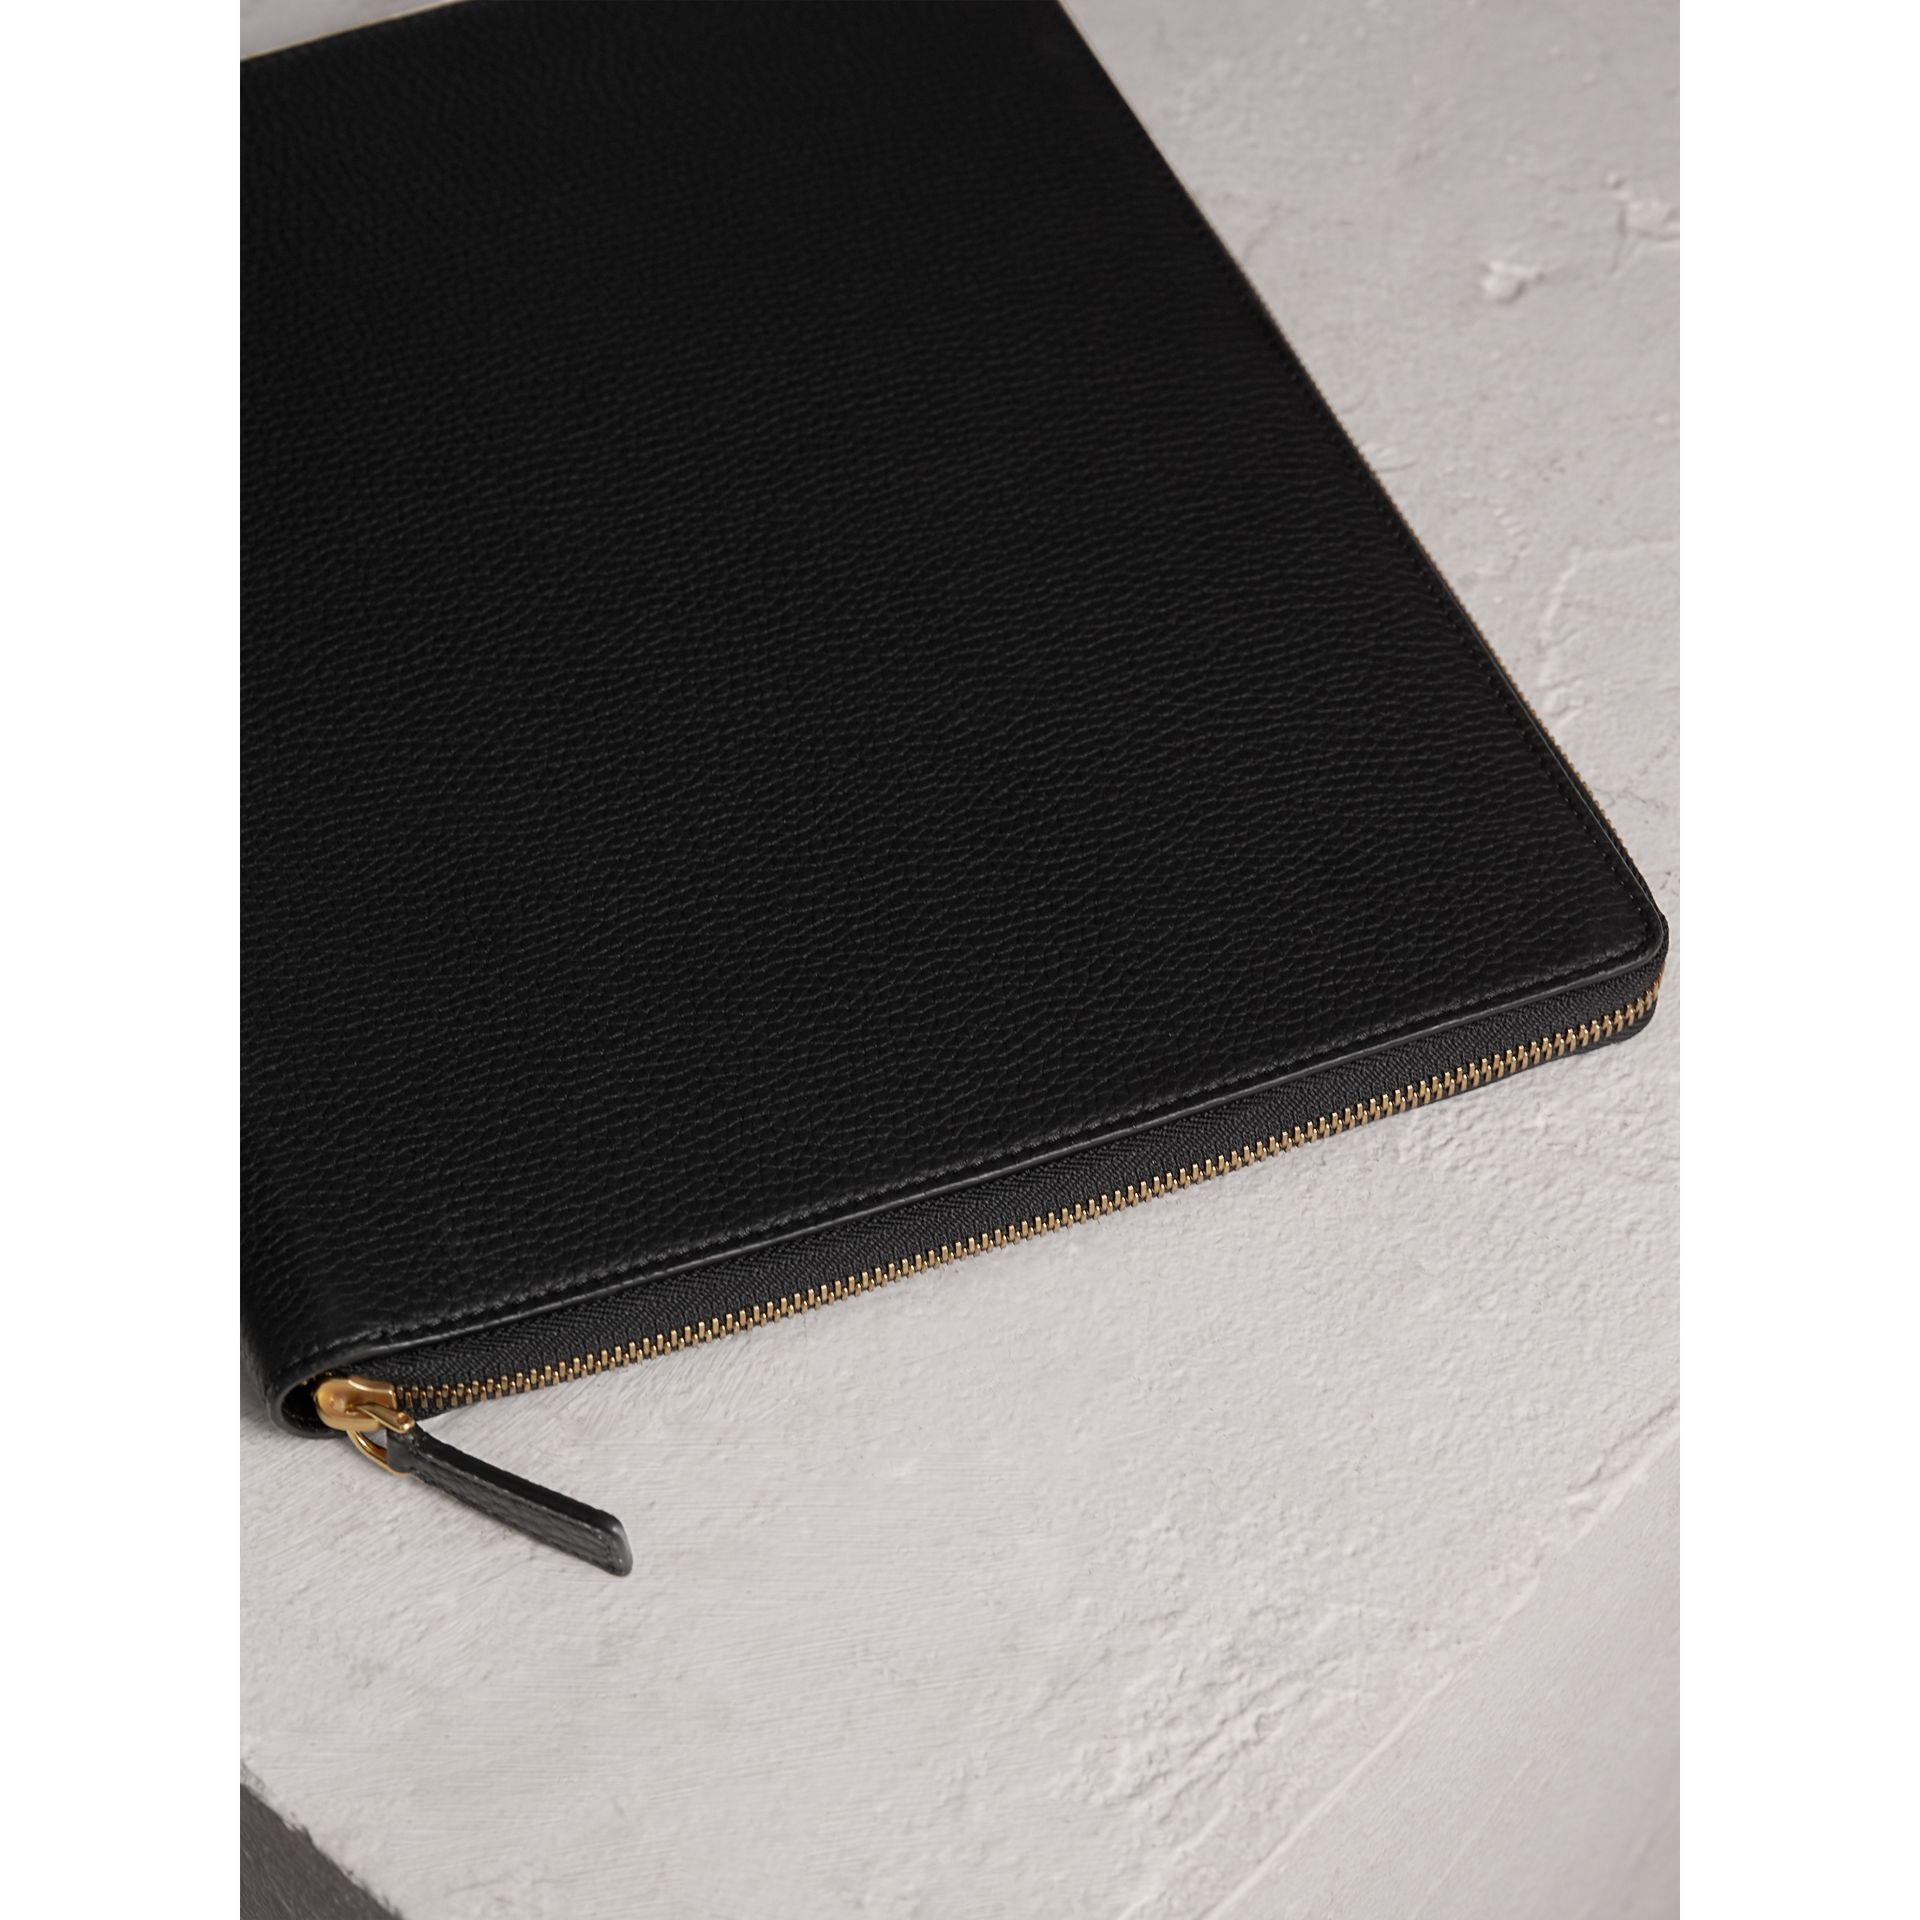 Embossed Grainy Leather Ziparound A4 Notebook Case in Black | Burberry Australia - gallery image 2